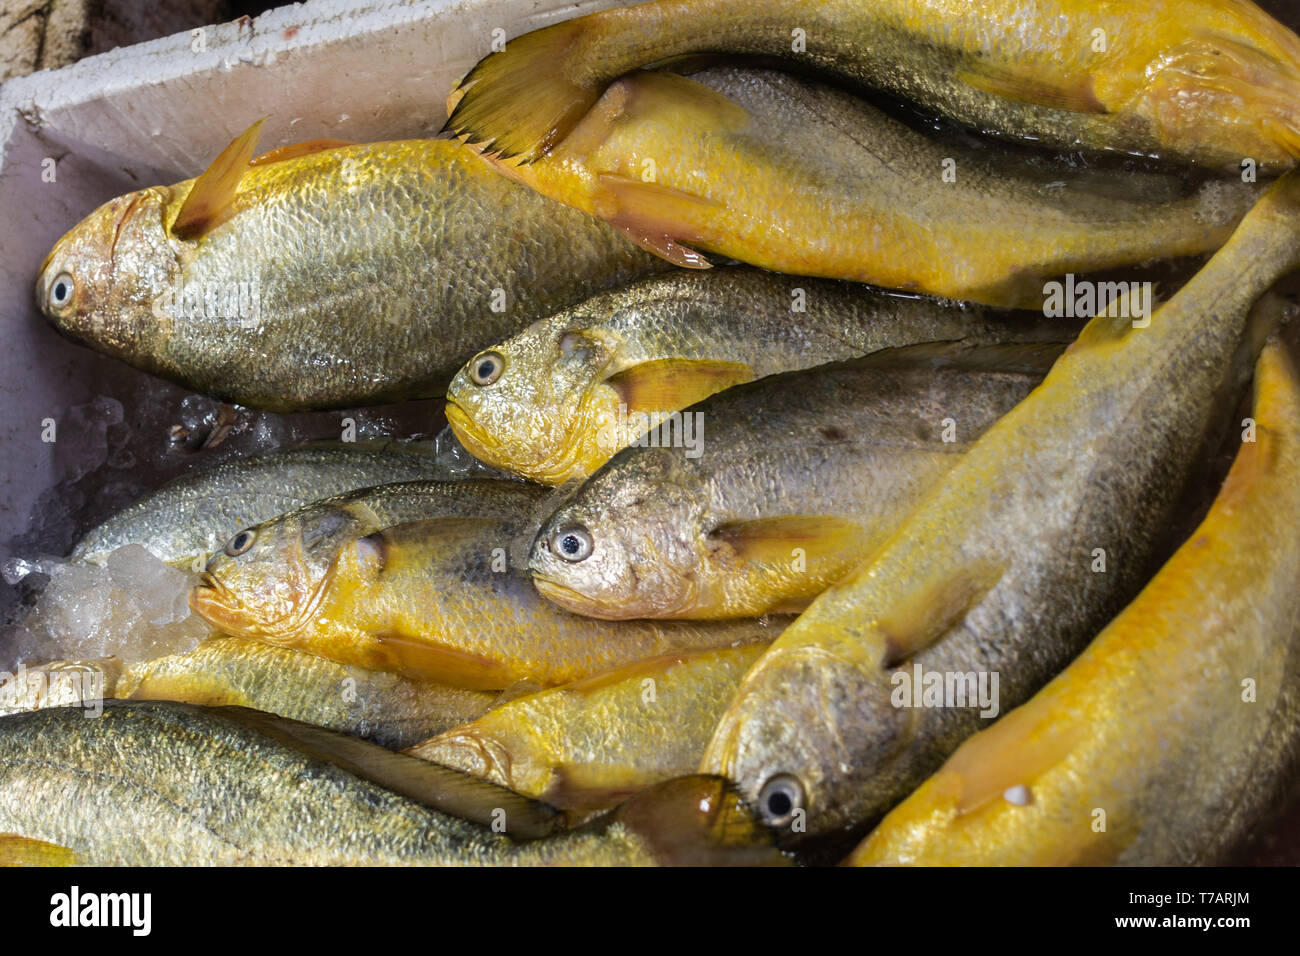 Hong Kong, China - March 7, 2019: Tai O Fishing village. Closeup of catch in Box: yellow belly snapper on sale in store, lying on ice. - Stock Image